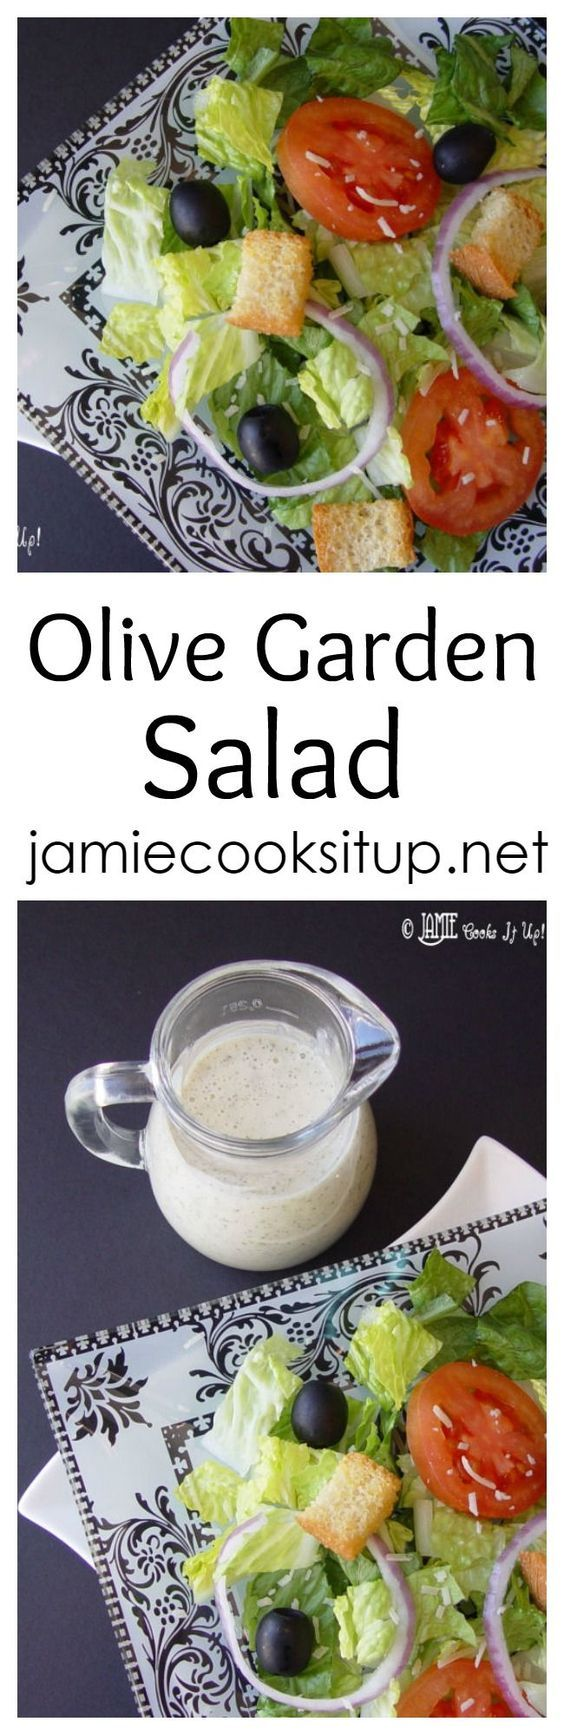 This Olive Garden Salad Is One Of The Most Popular Salads On My Site Always A Crowd Pleaser